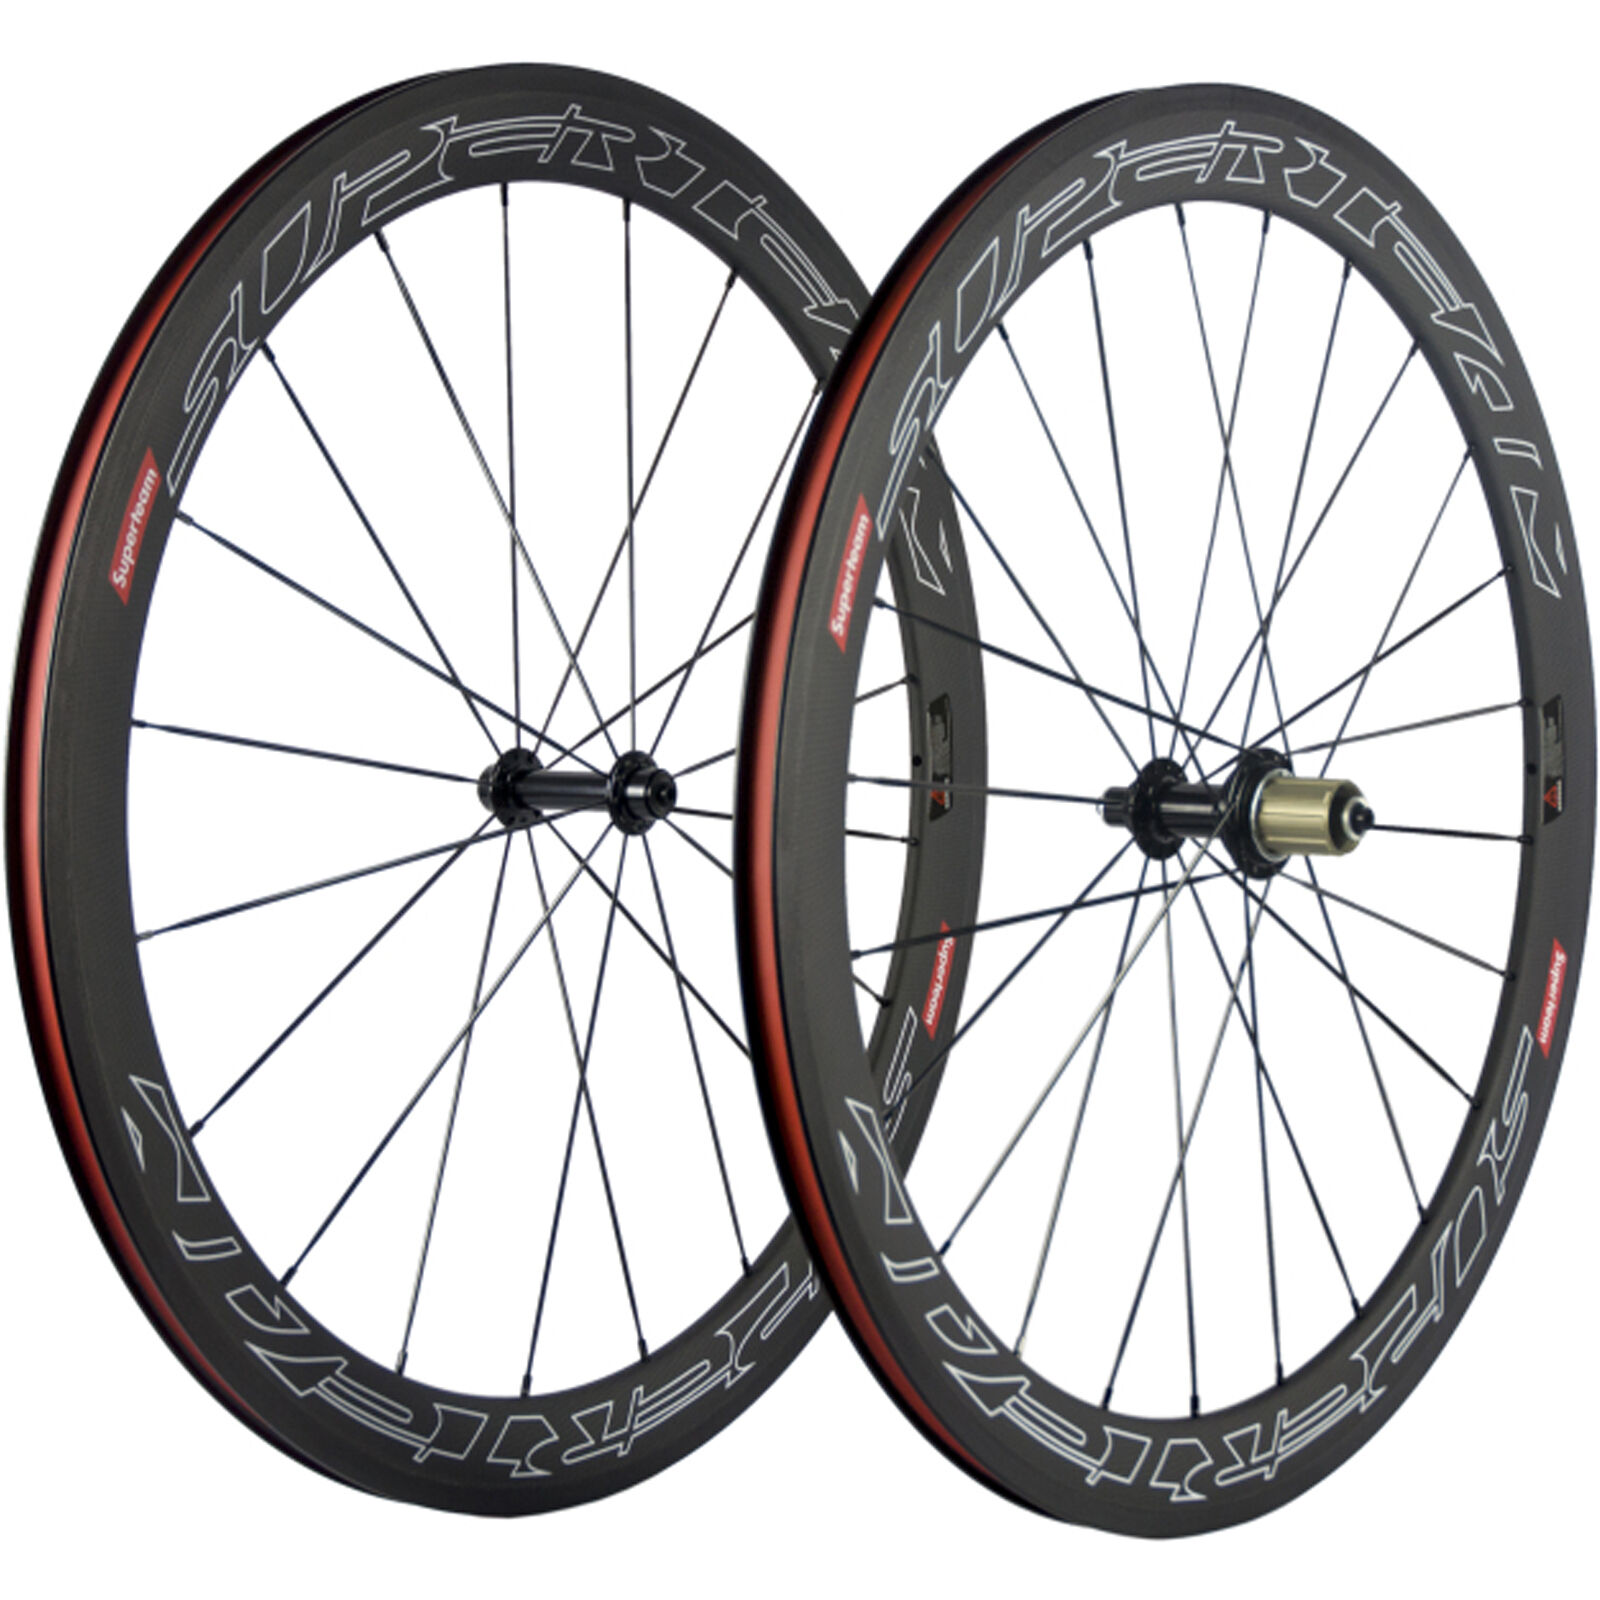 SUPERTEAM 50mm  Road Bike Clincher Carbon Wheels Bicycle Touring Carbon Wheelset  factory direct